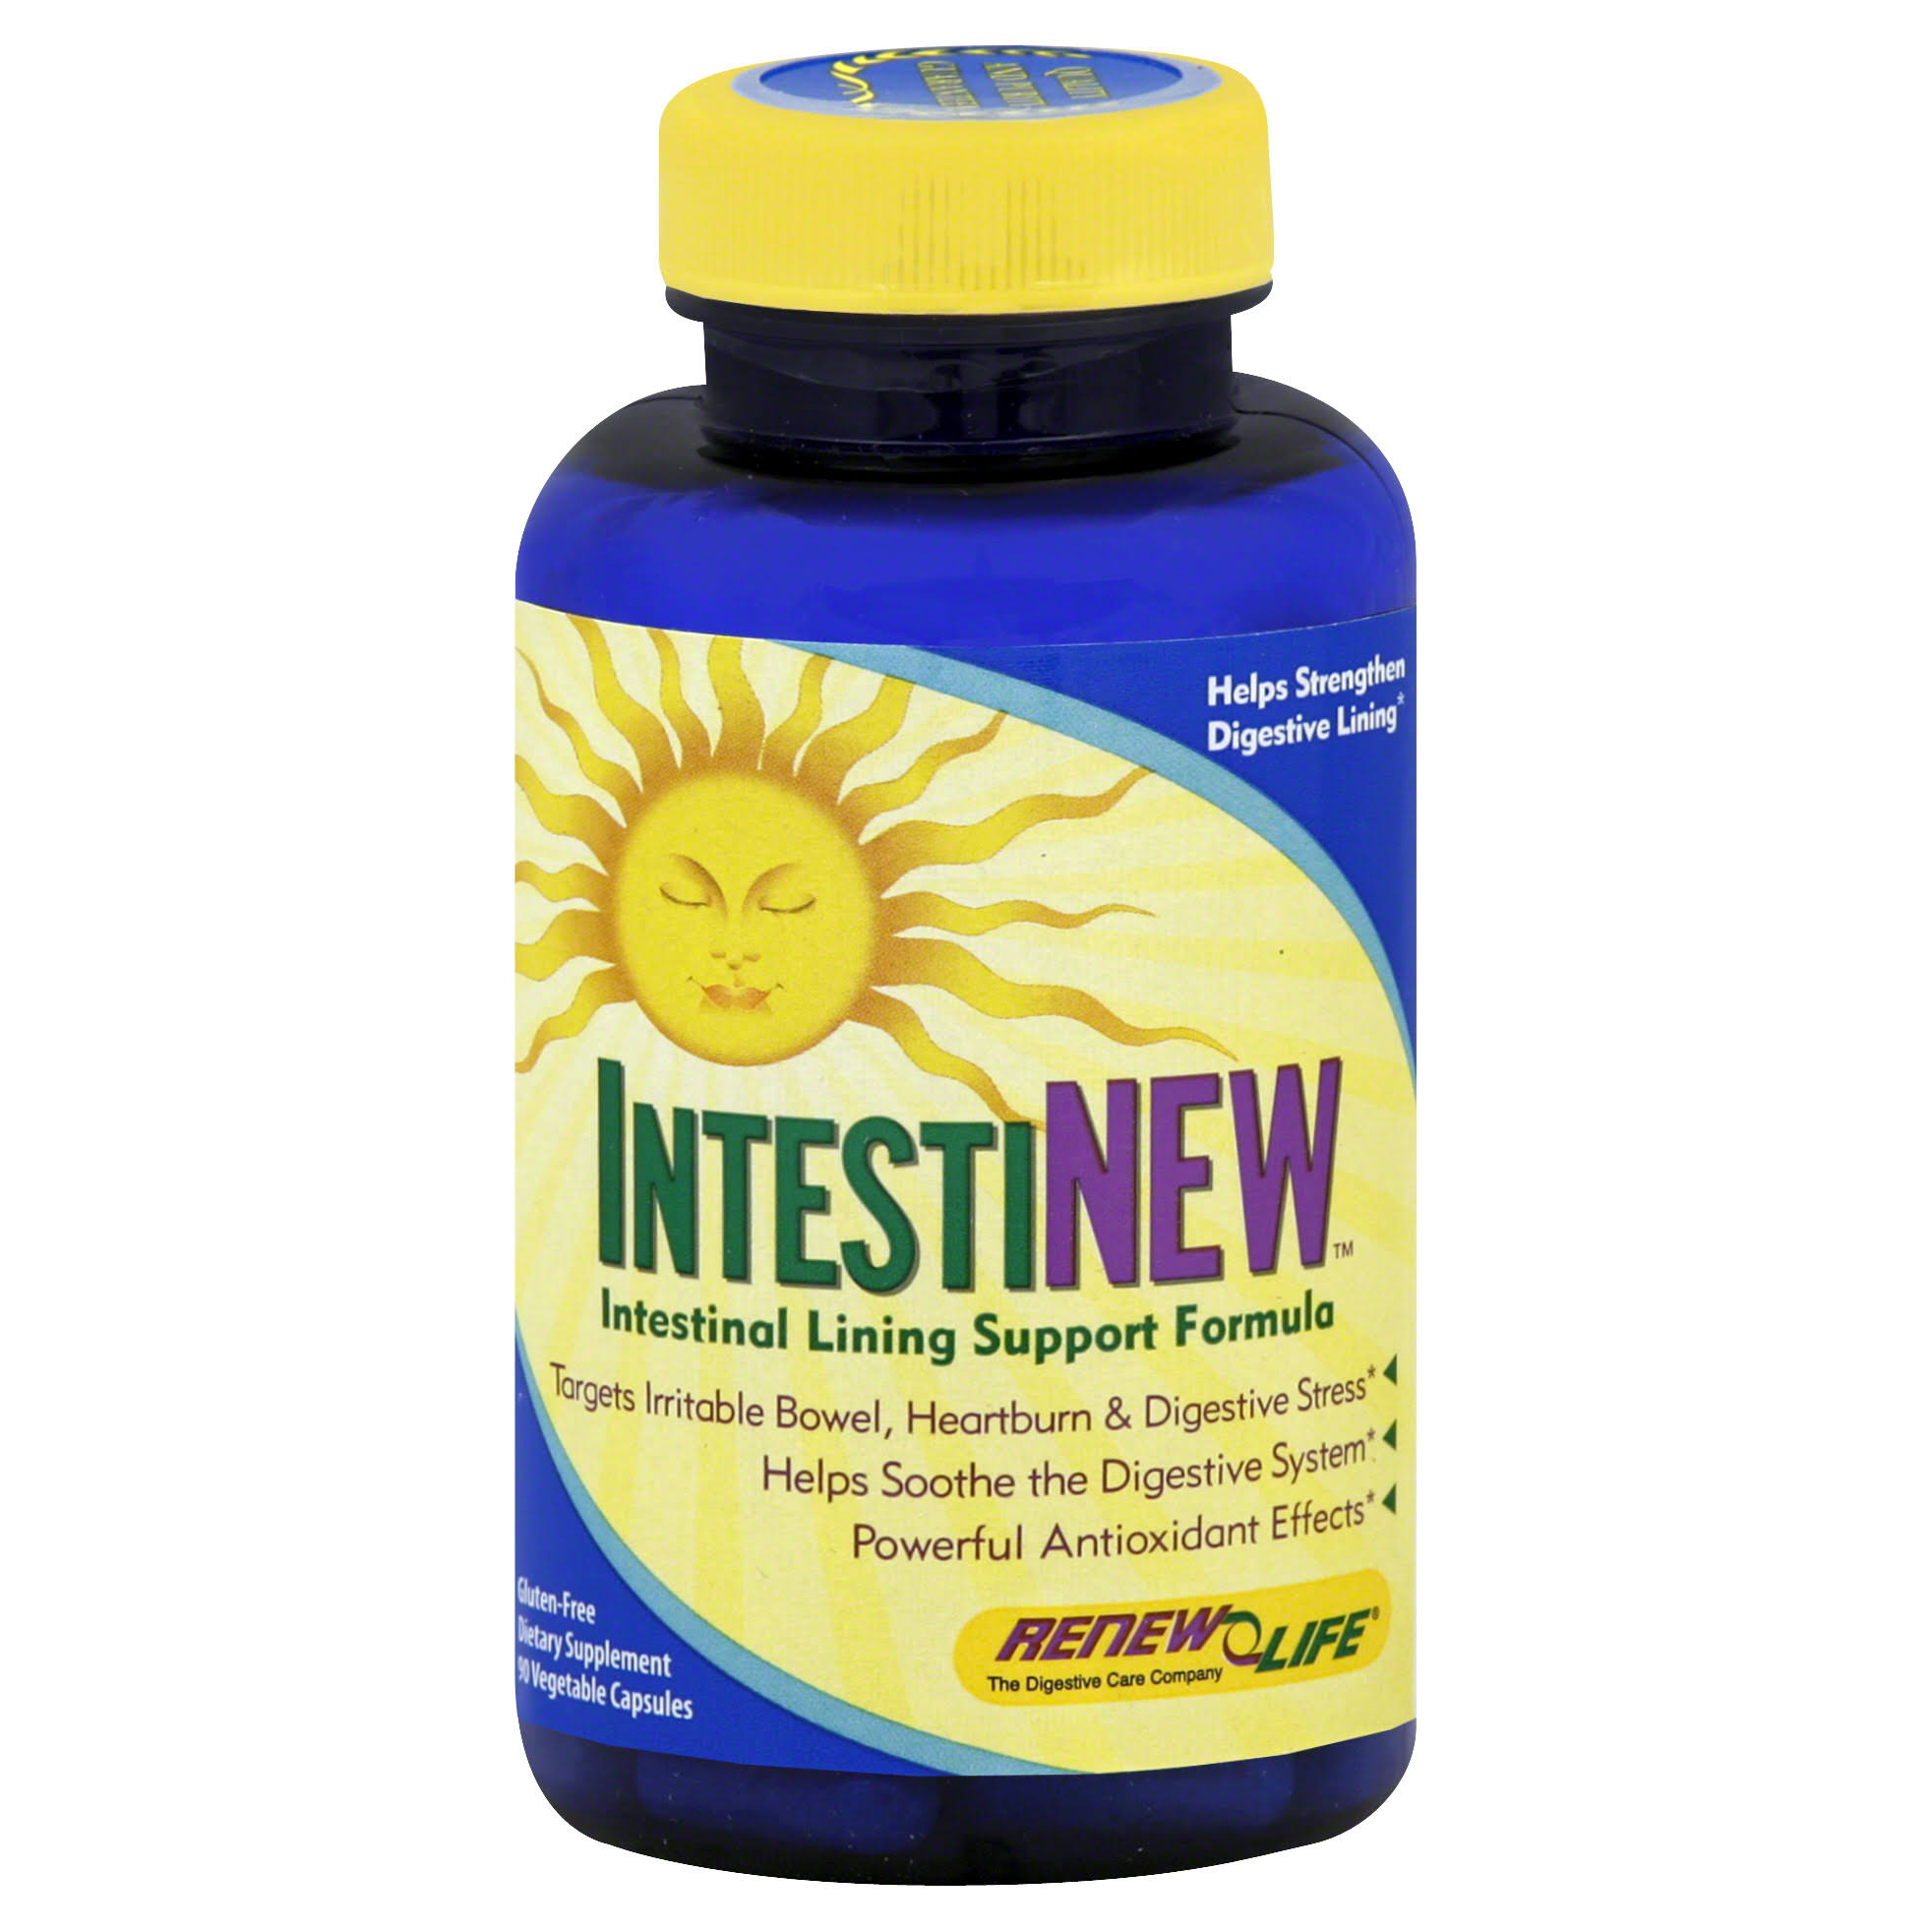 Renew Life Intestinew Intestinal Lining Support Vegetable Capsules - 90ct